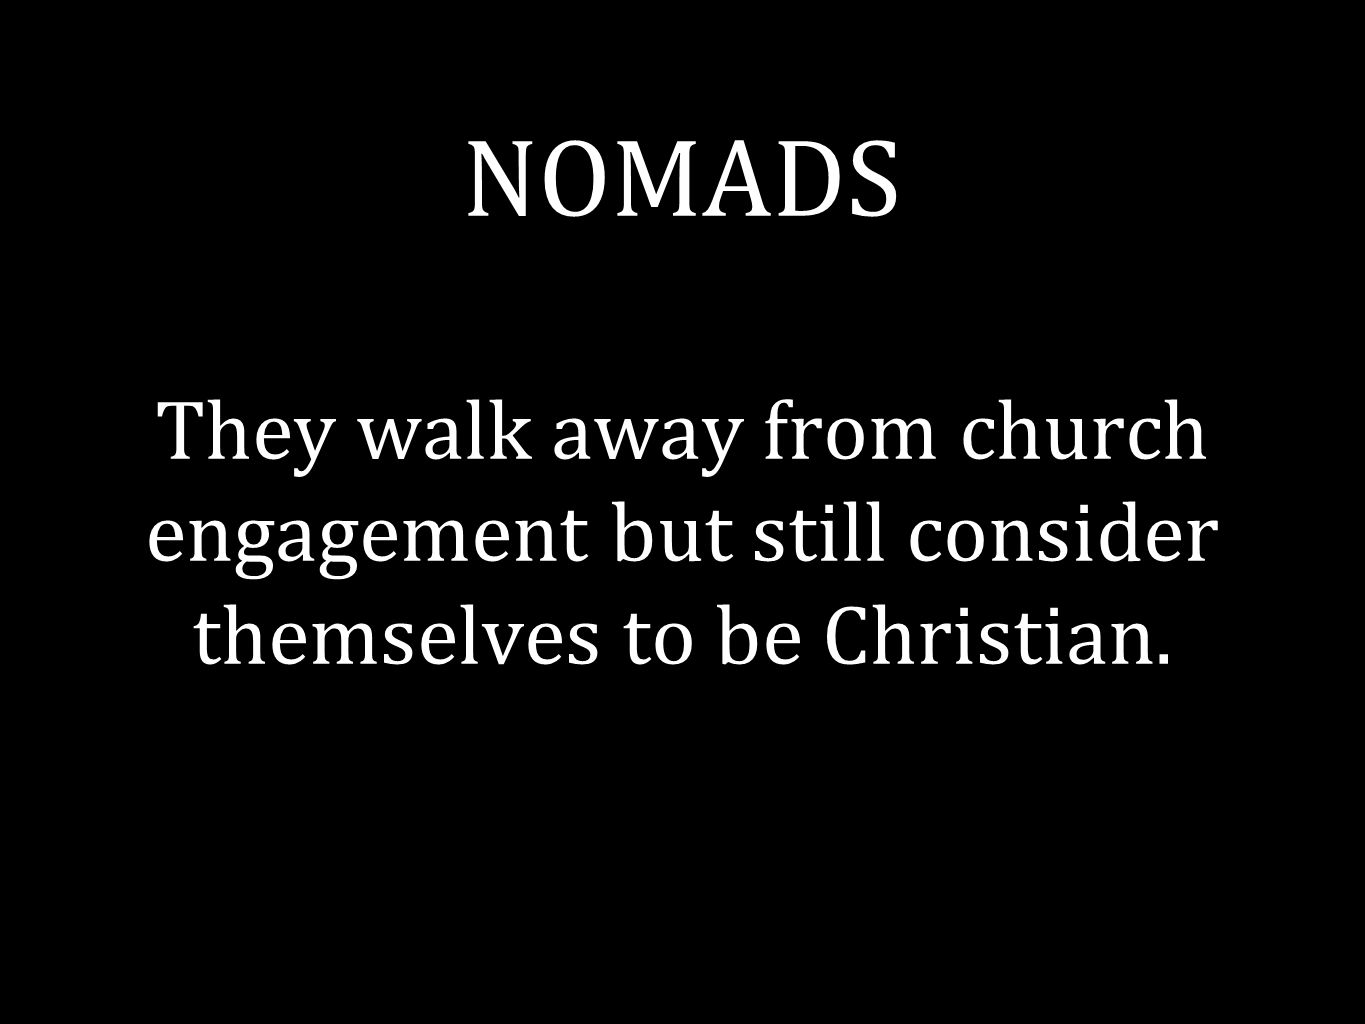 NOMADS They walk away from church engagement but still consider themselves to be Christian.